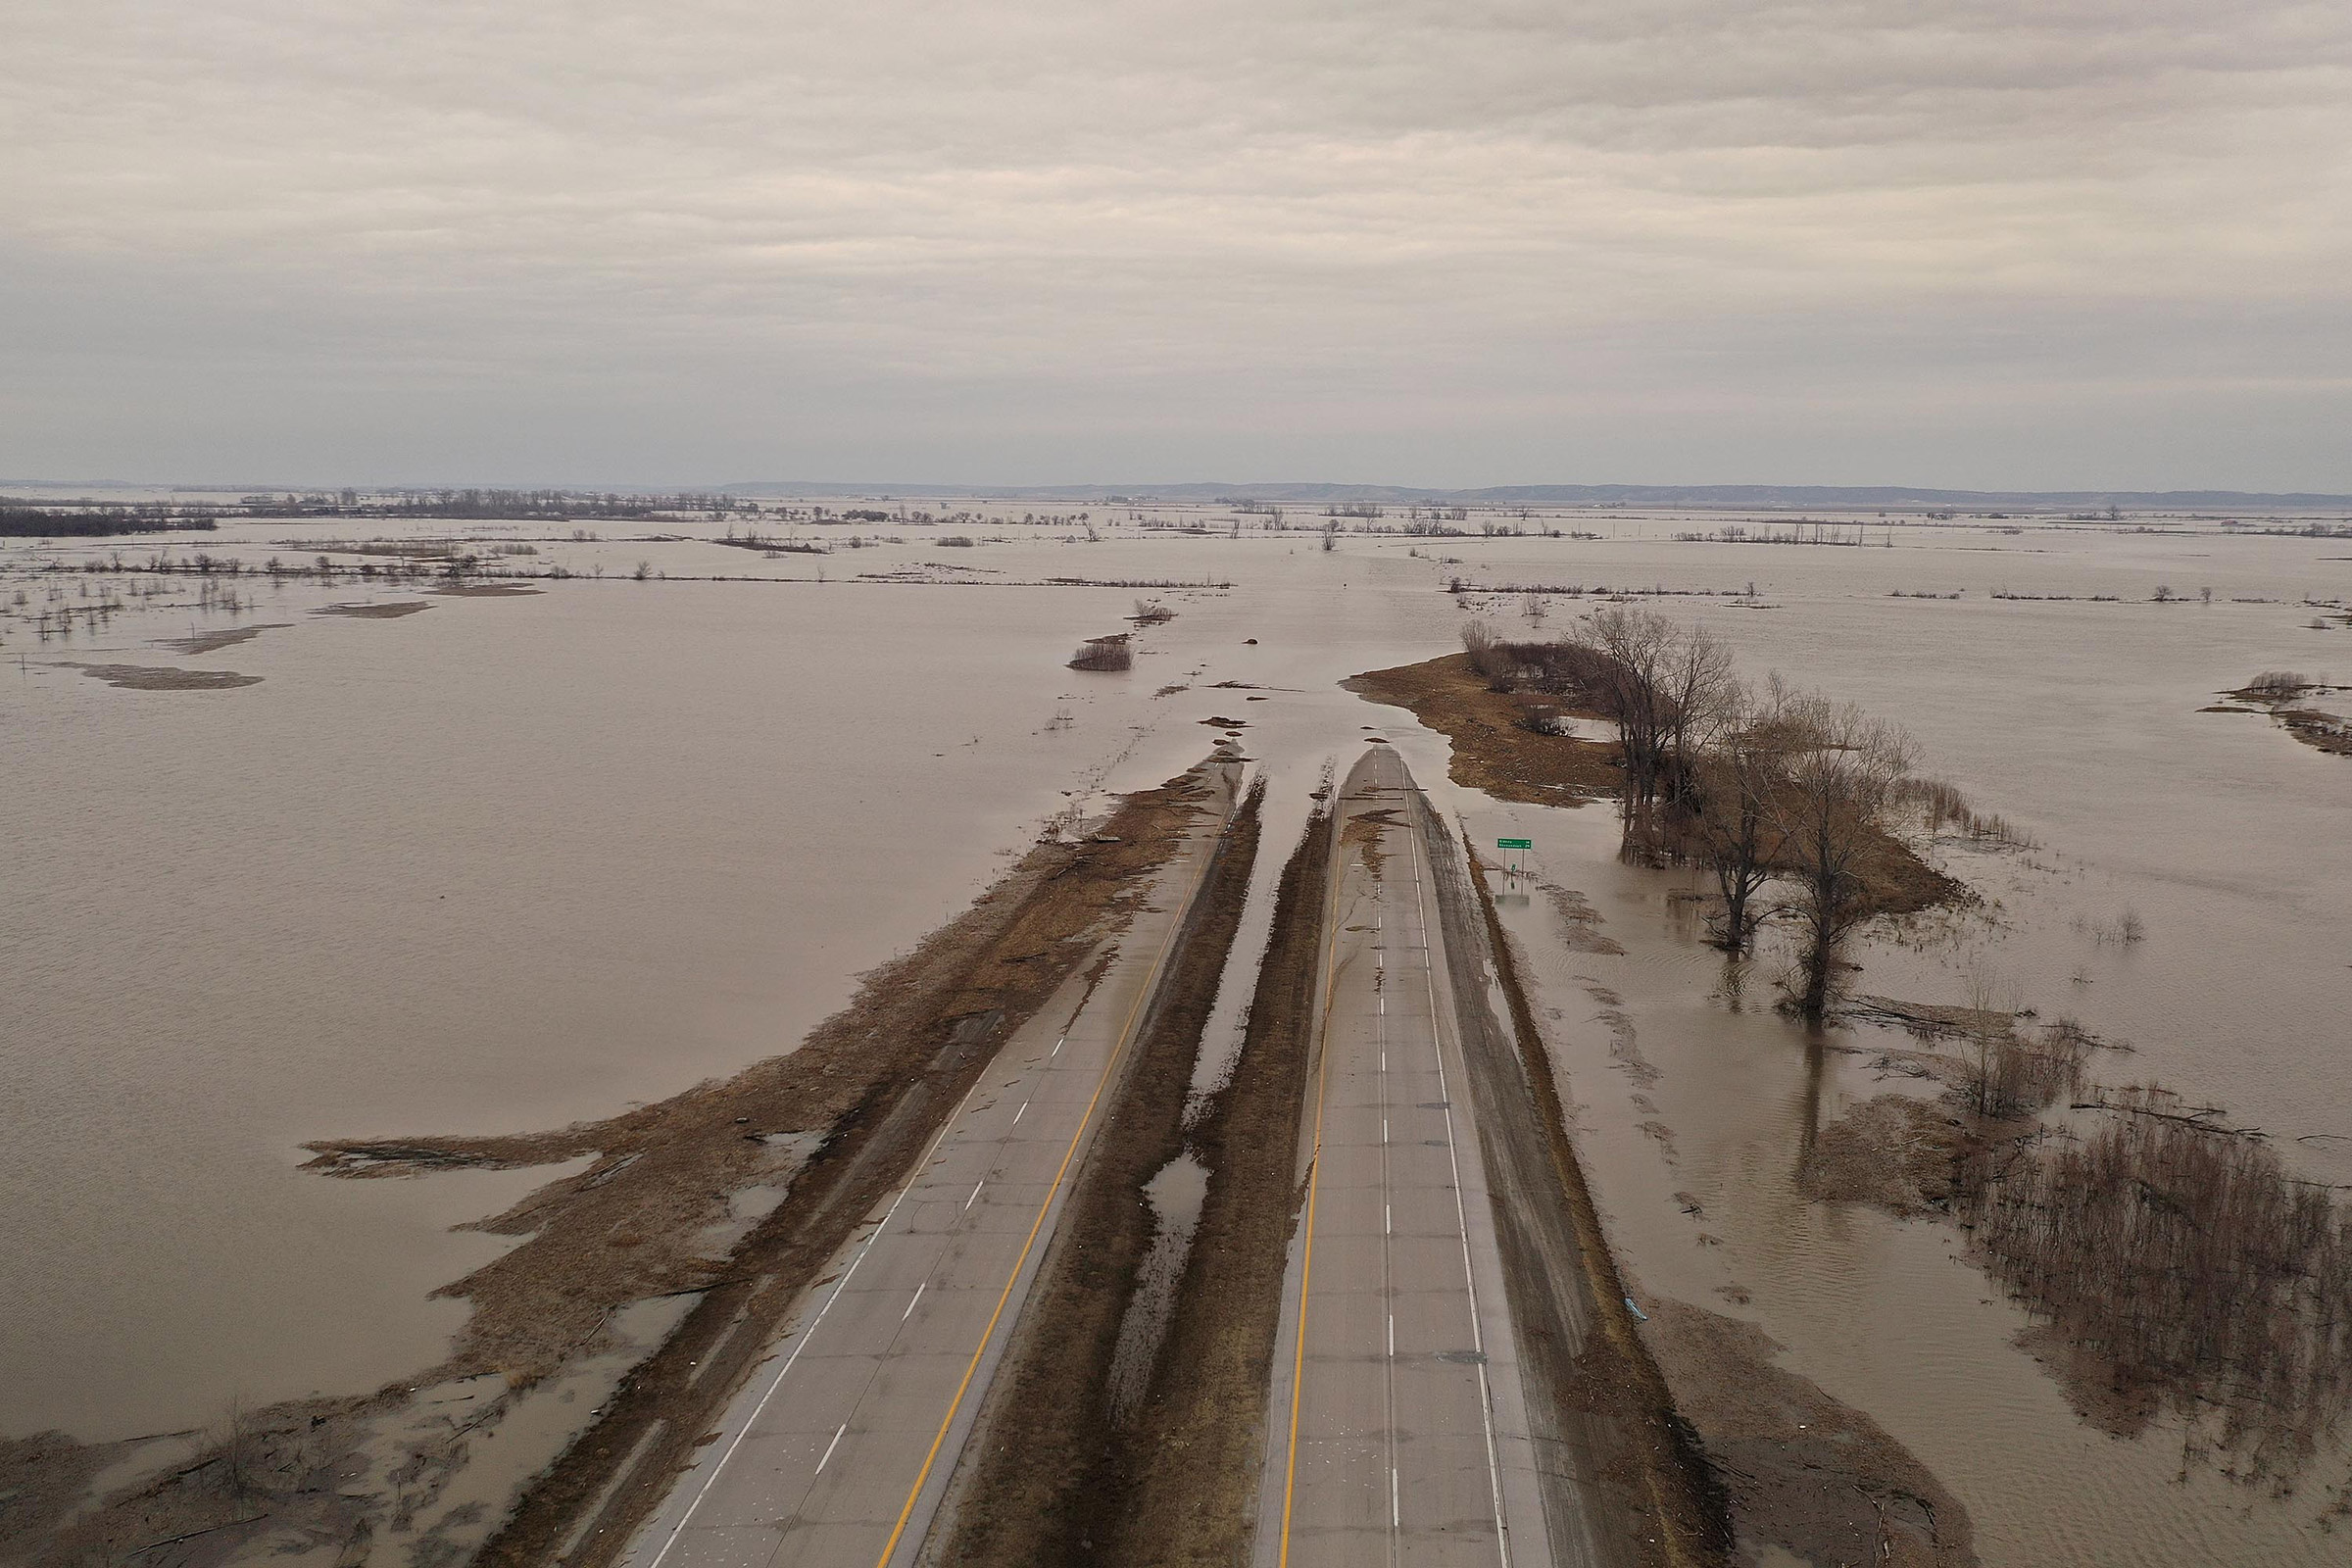 Floodwater covers Highway 2 near Sidney. Iowa on March 23, 2019.